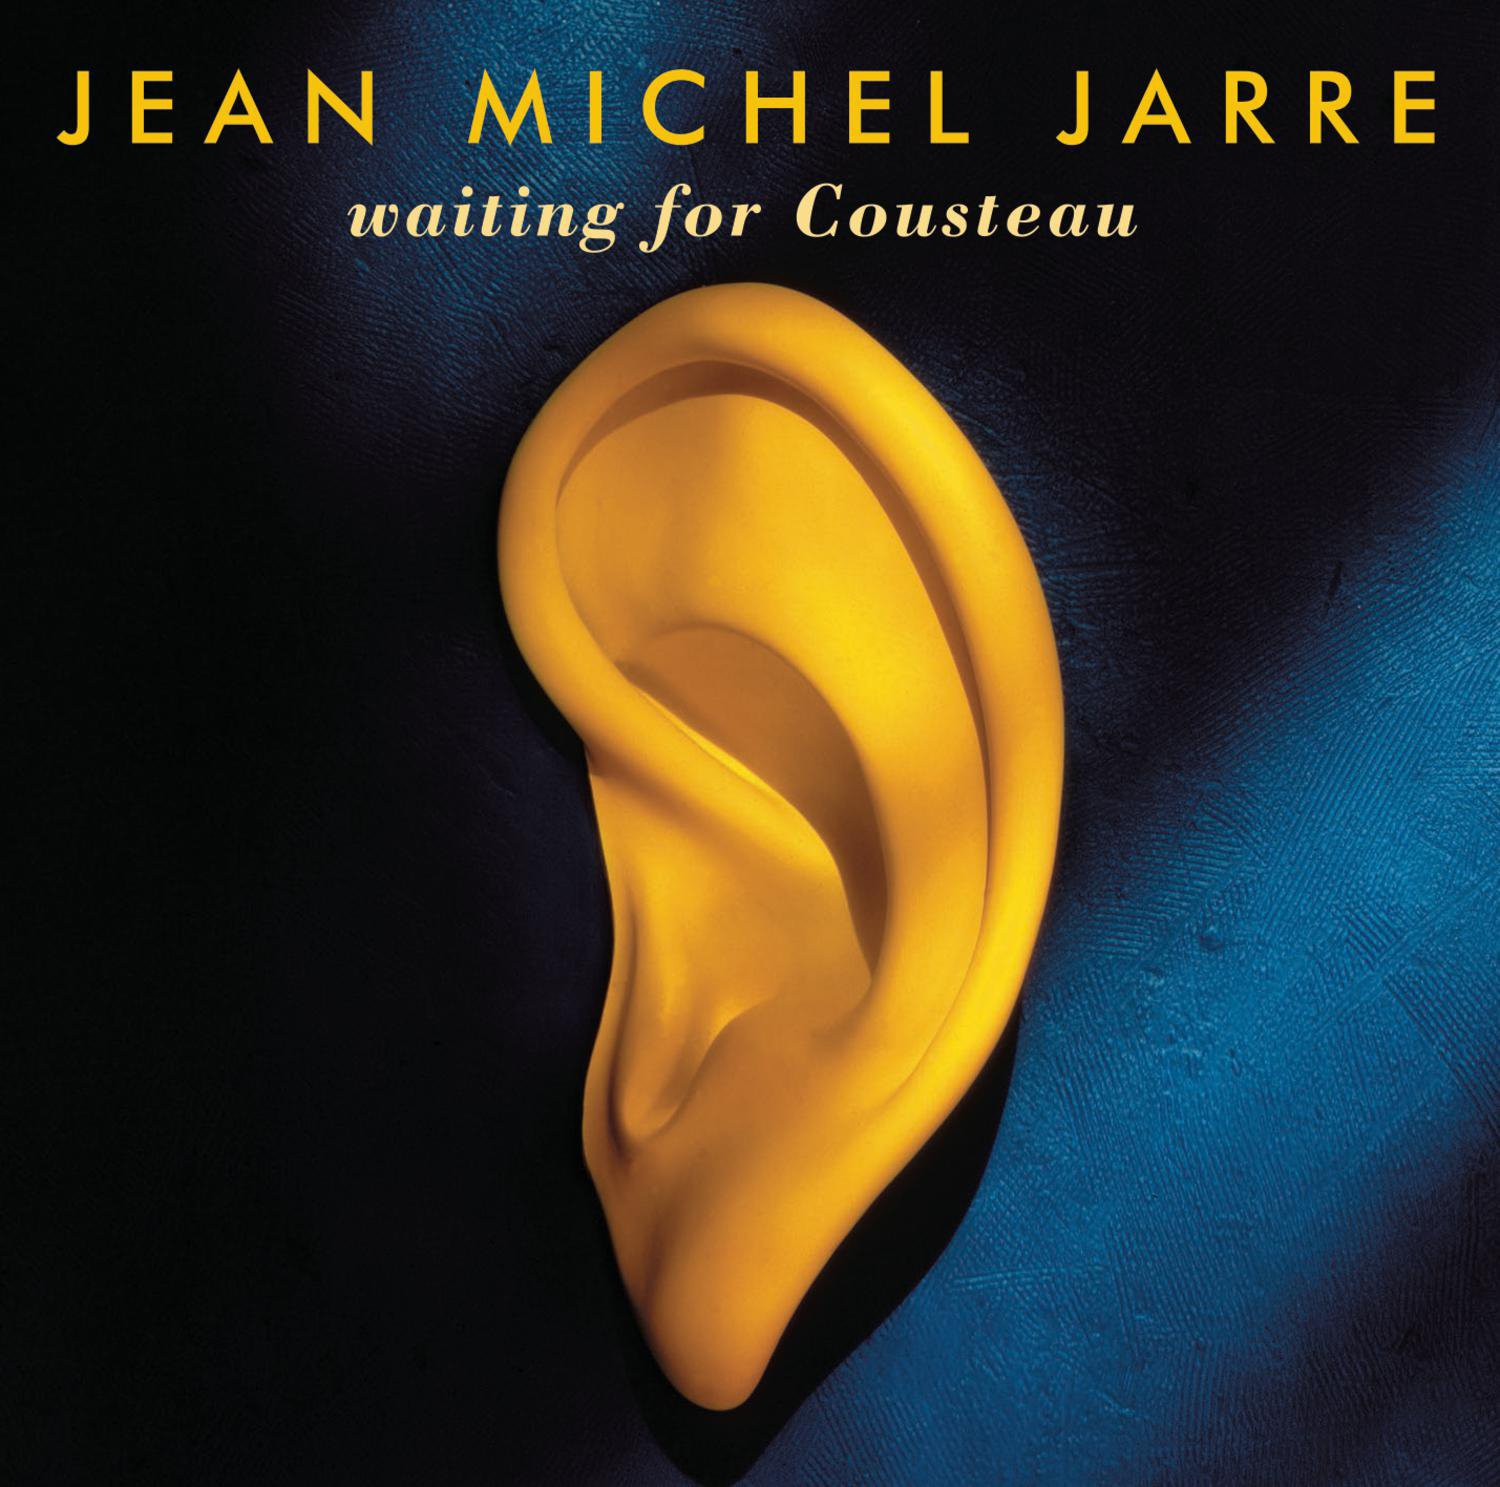 Latest albums by Jean-Michel Jarre